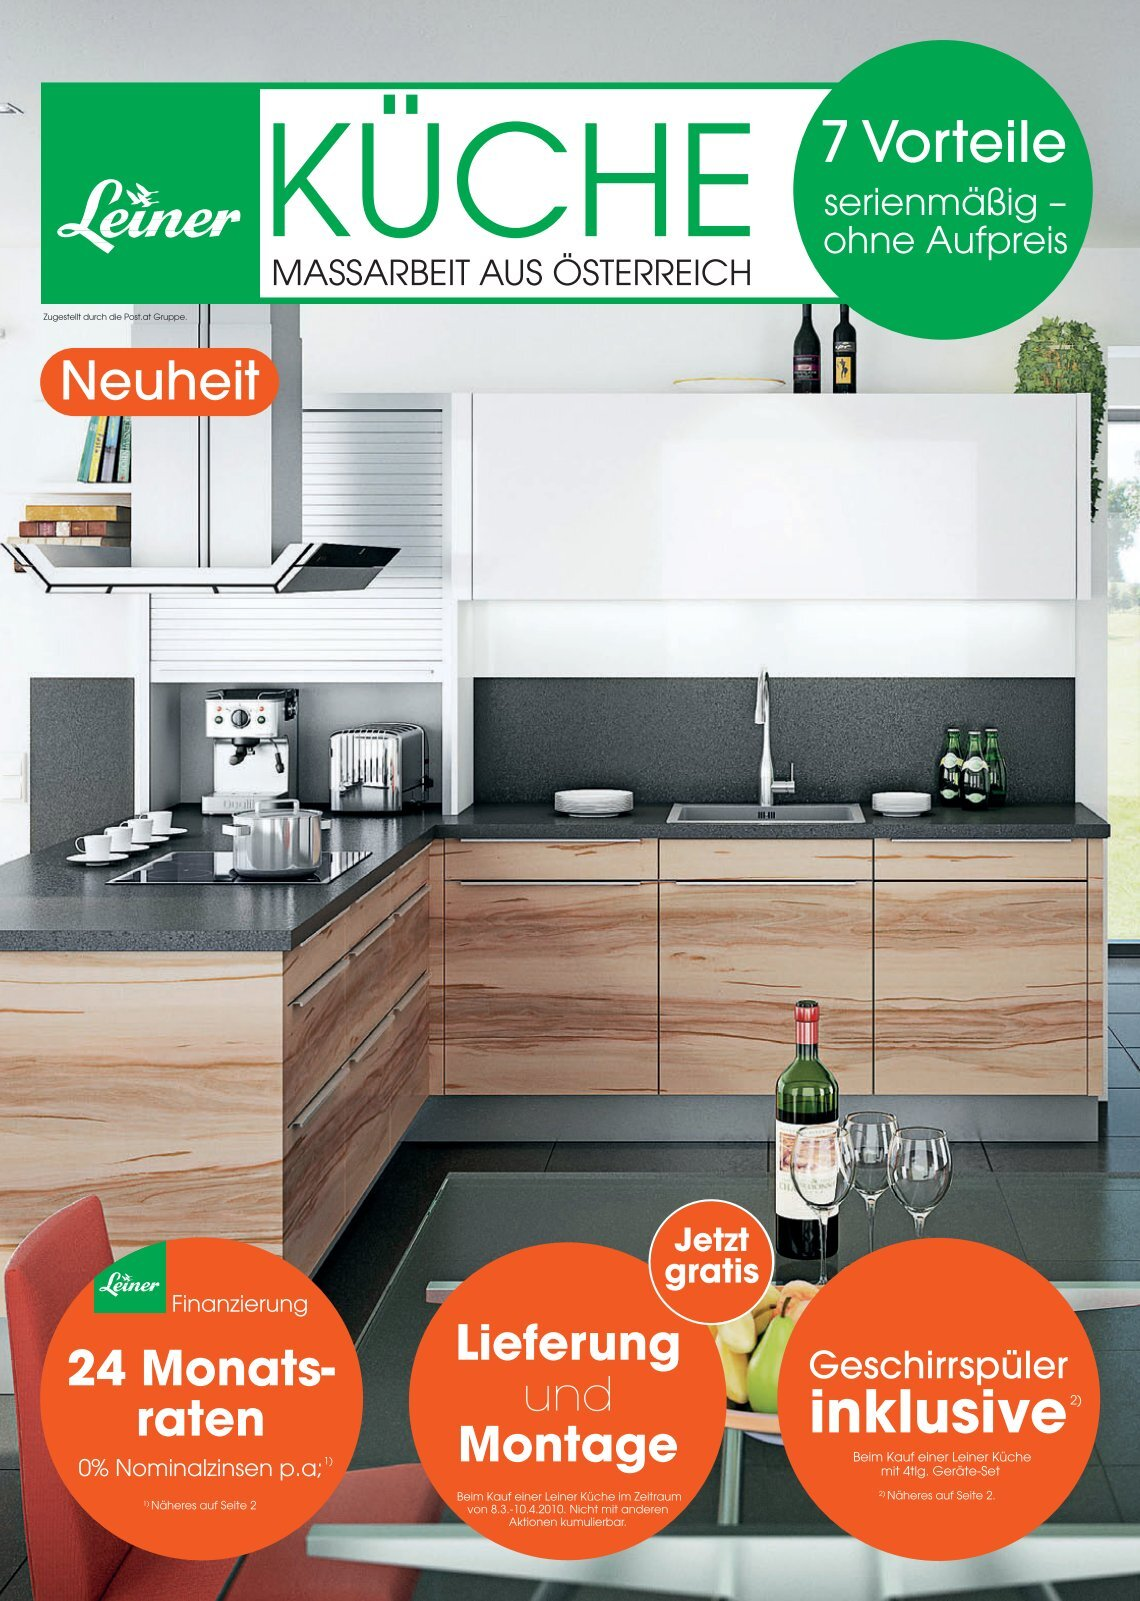 170 Free Magazines From Leiner